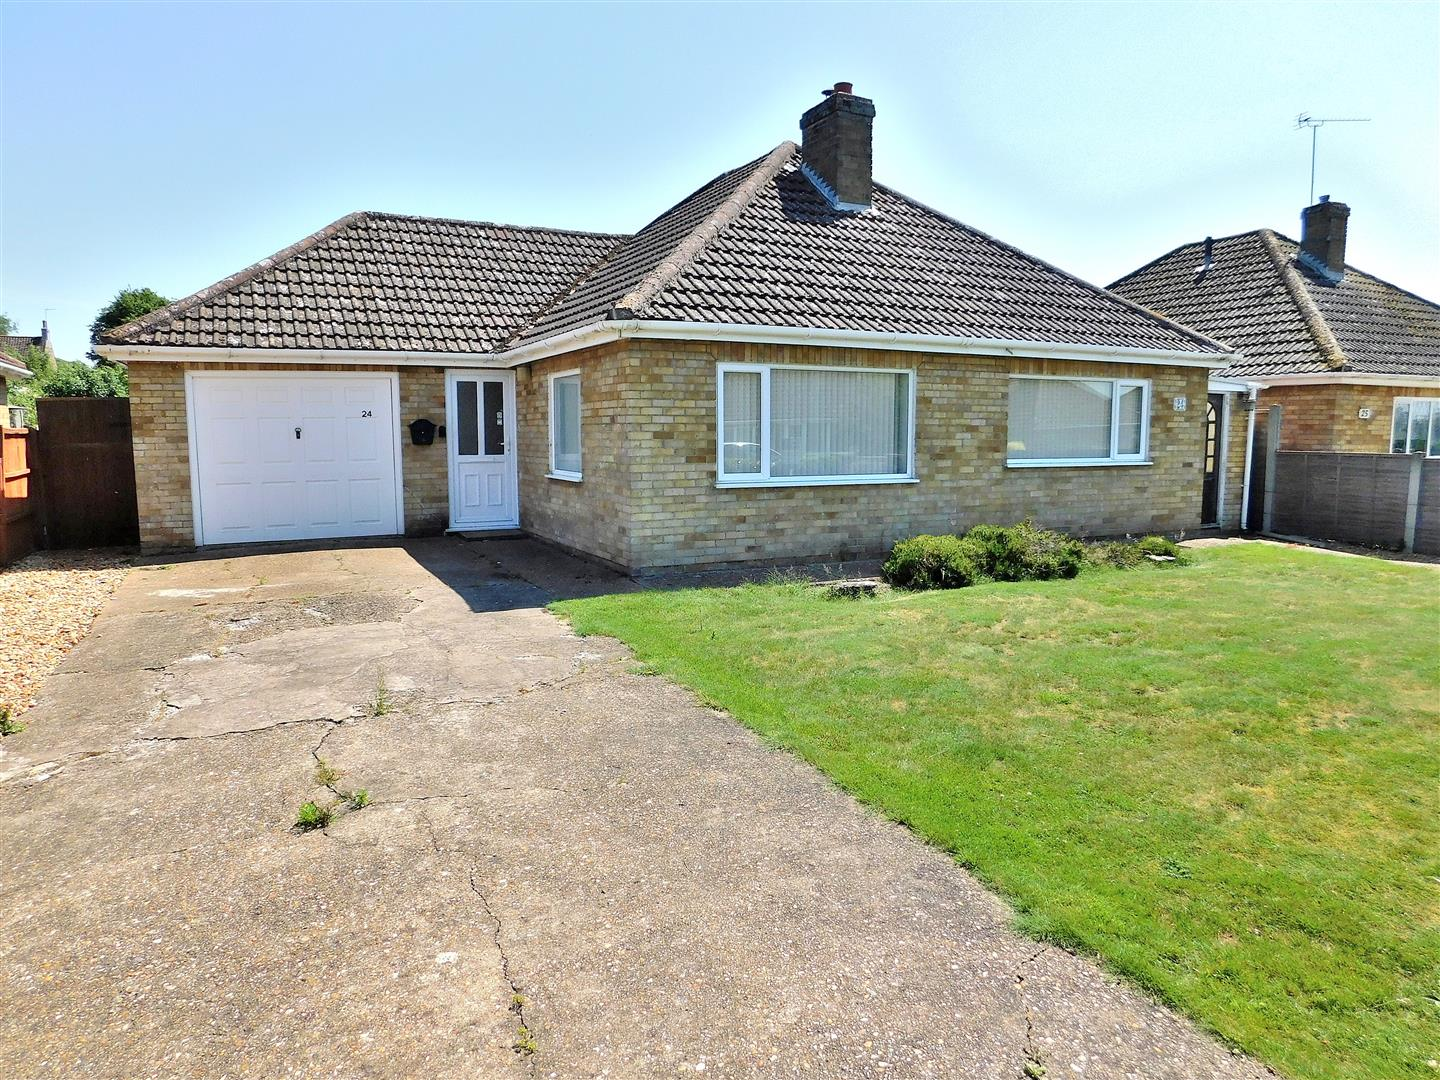 3 bed detached bungalow for sale in King's Lynn, PE33 0JZ 0